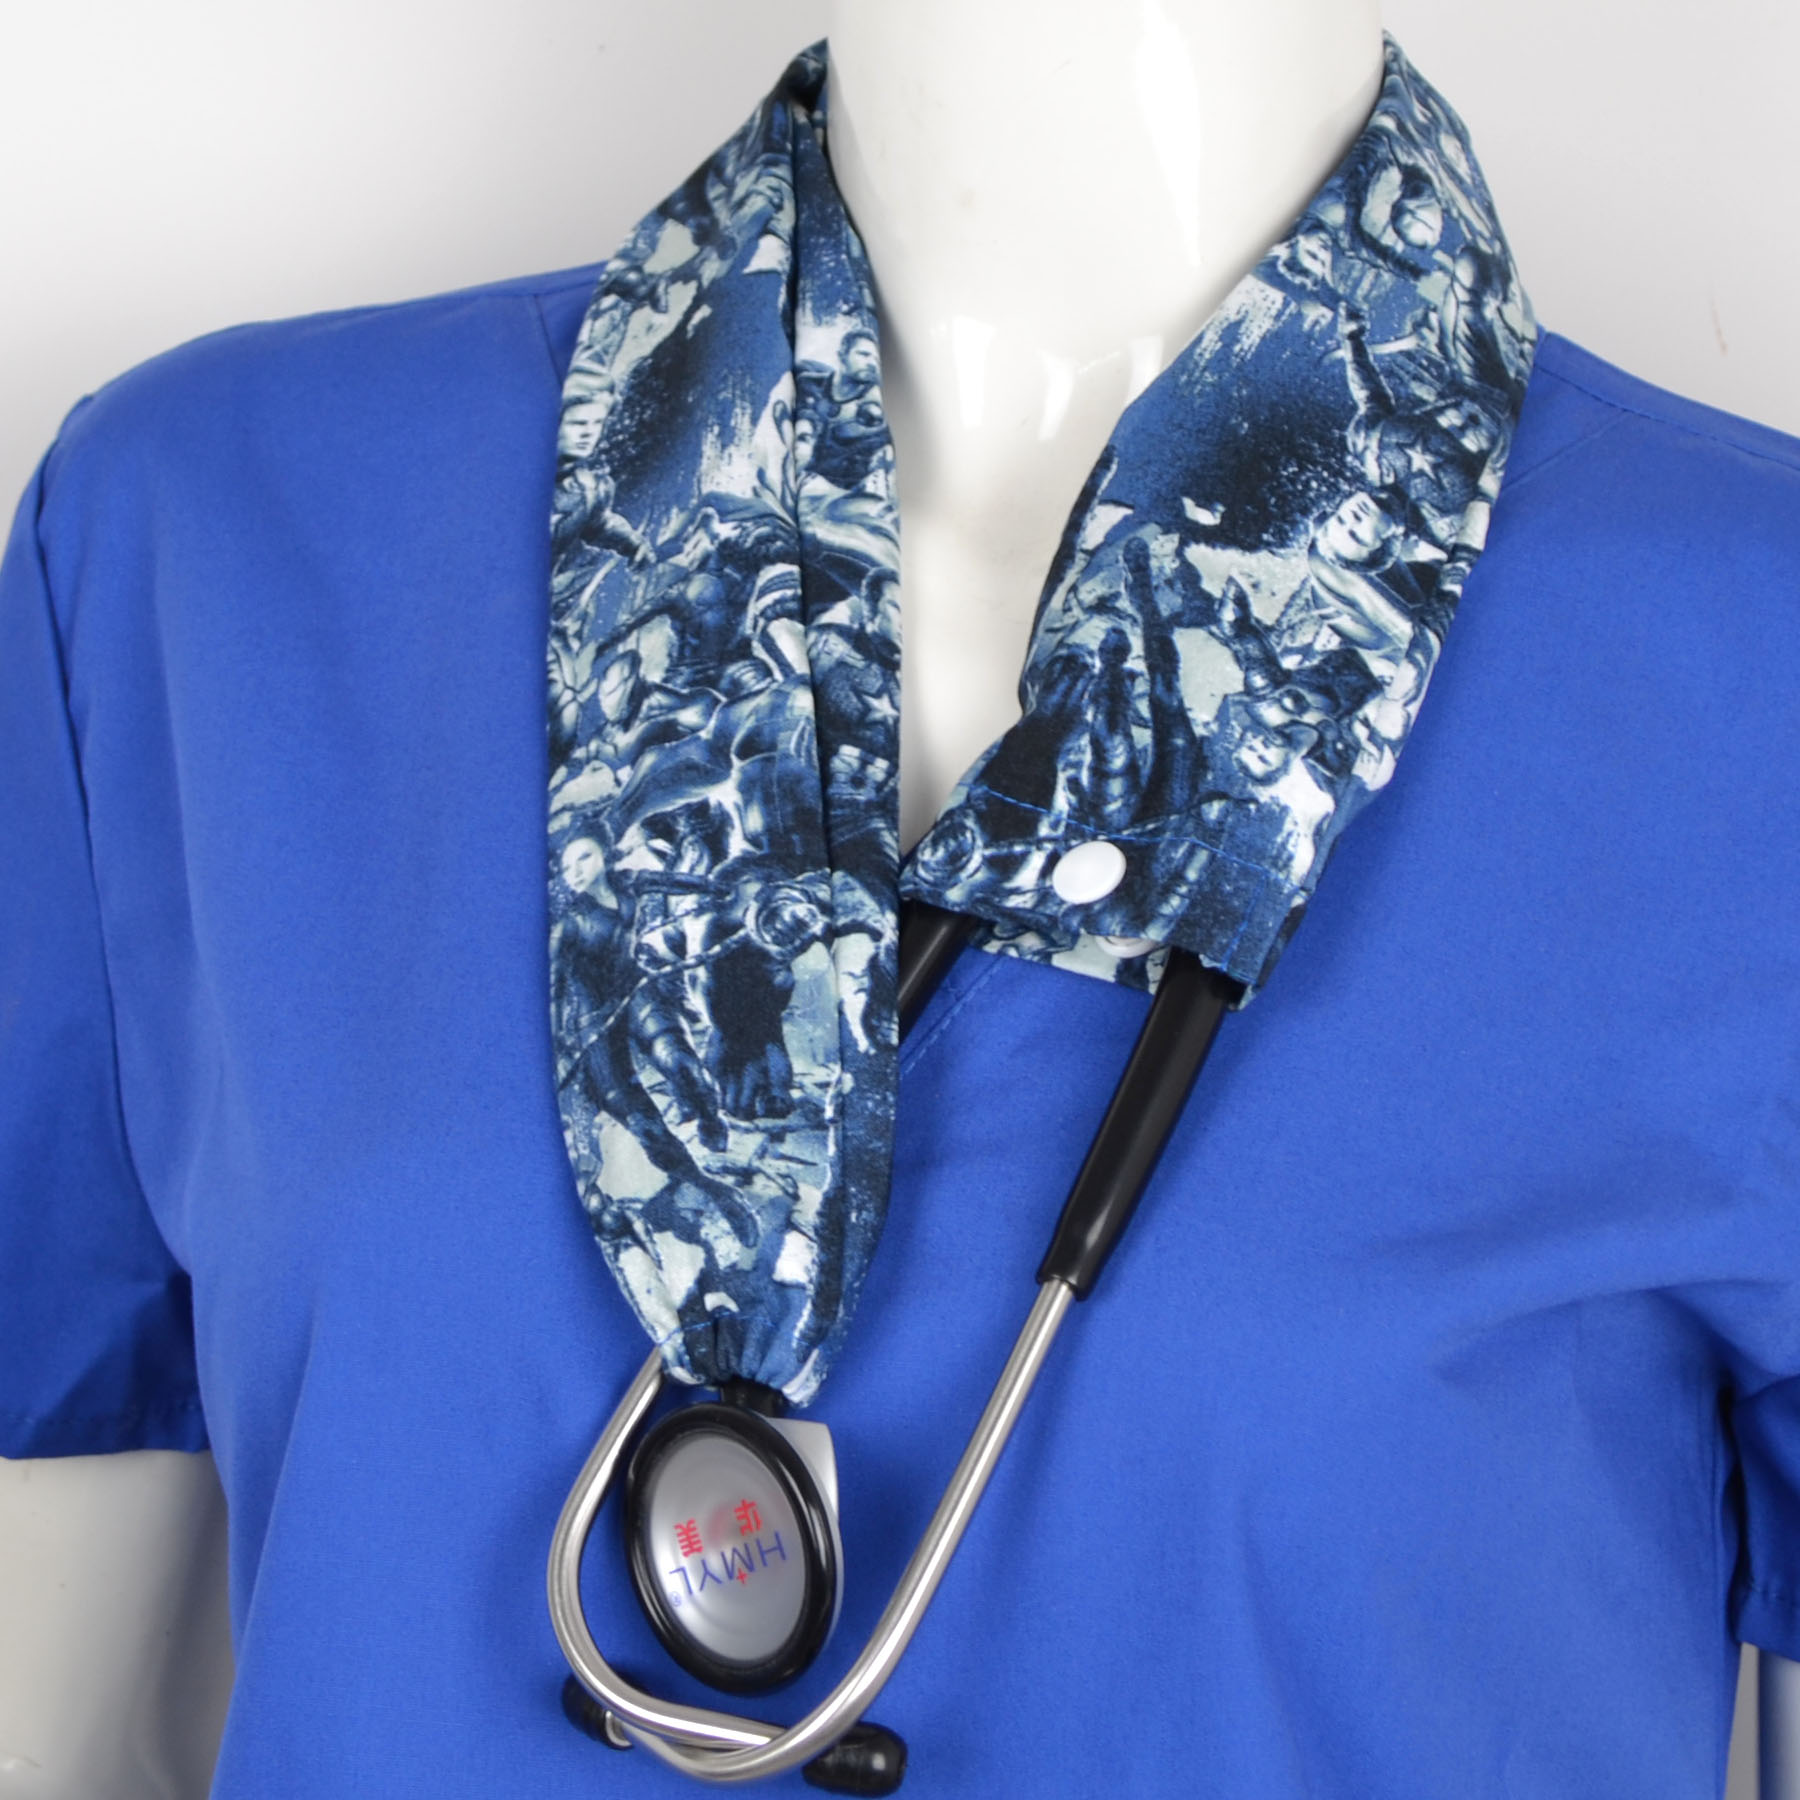 Medical Stethoscope Cover Cotton Material In Dark Blue